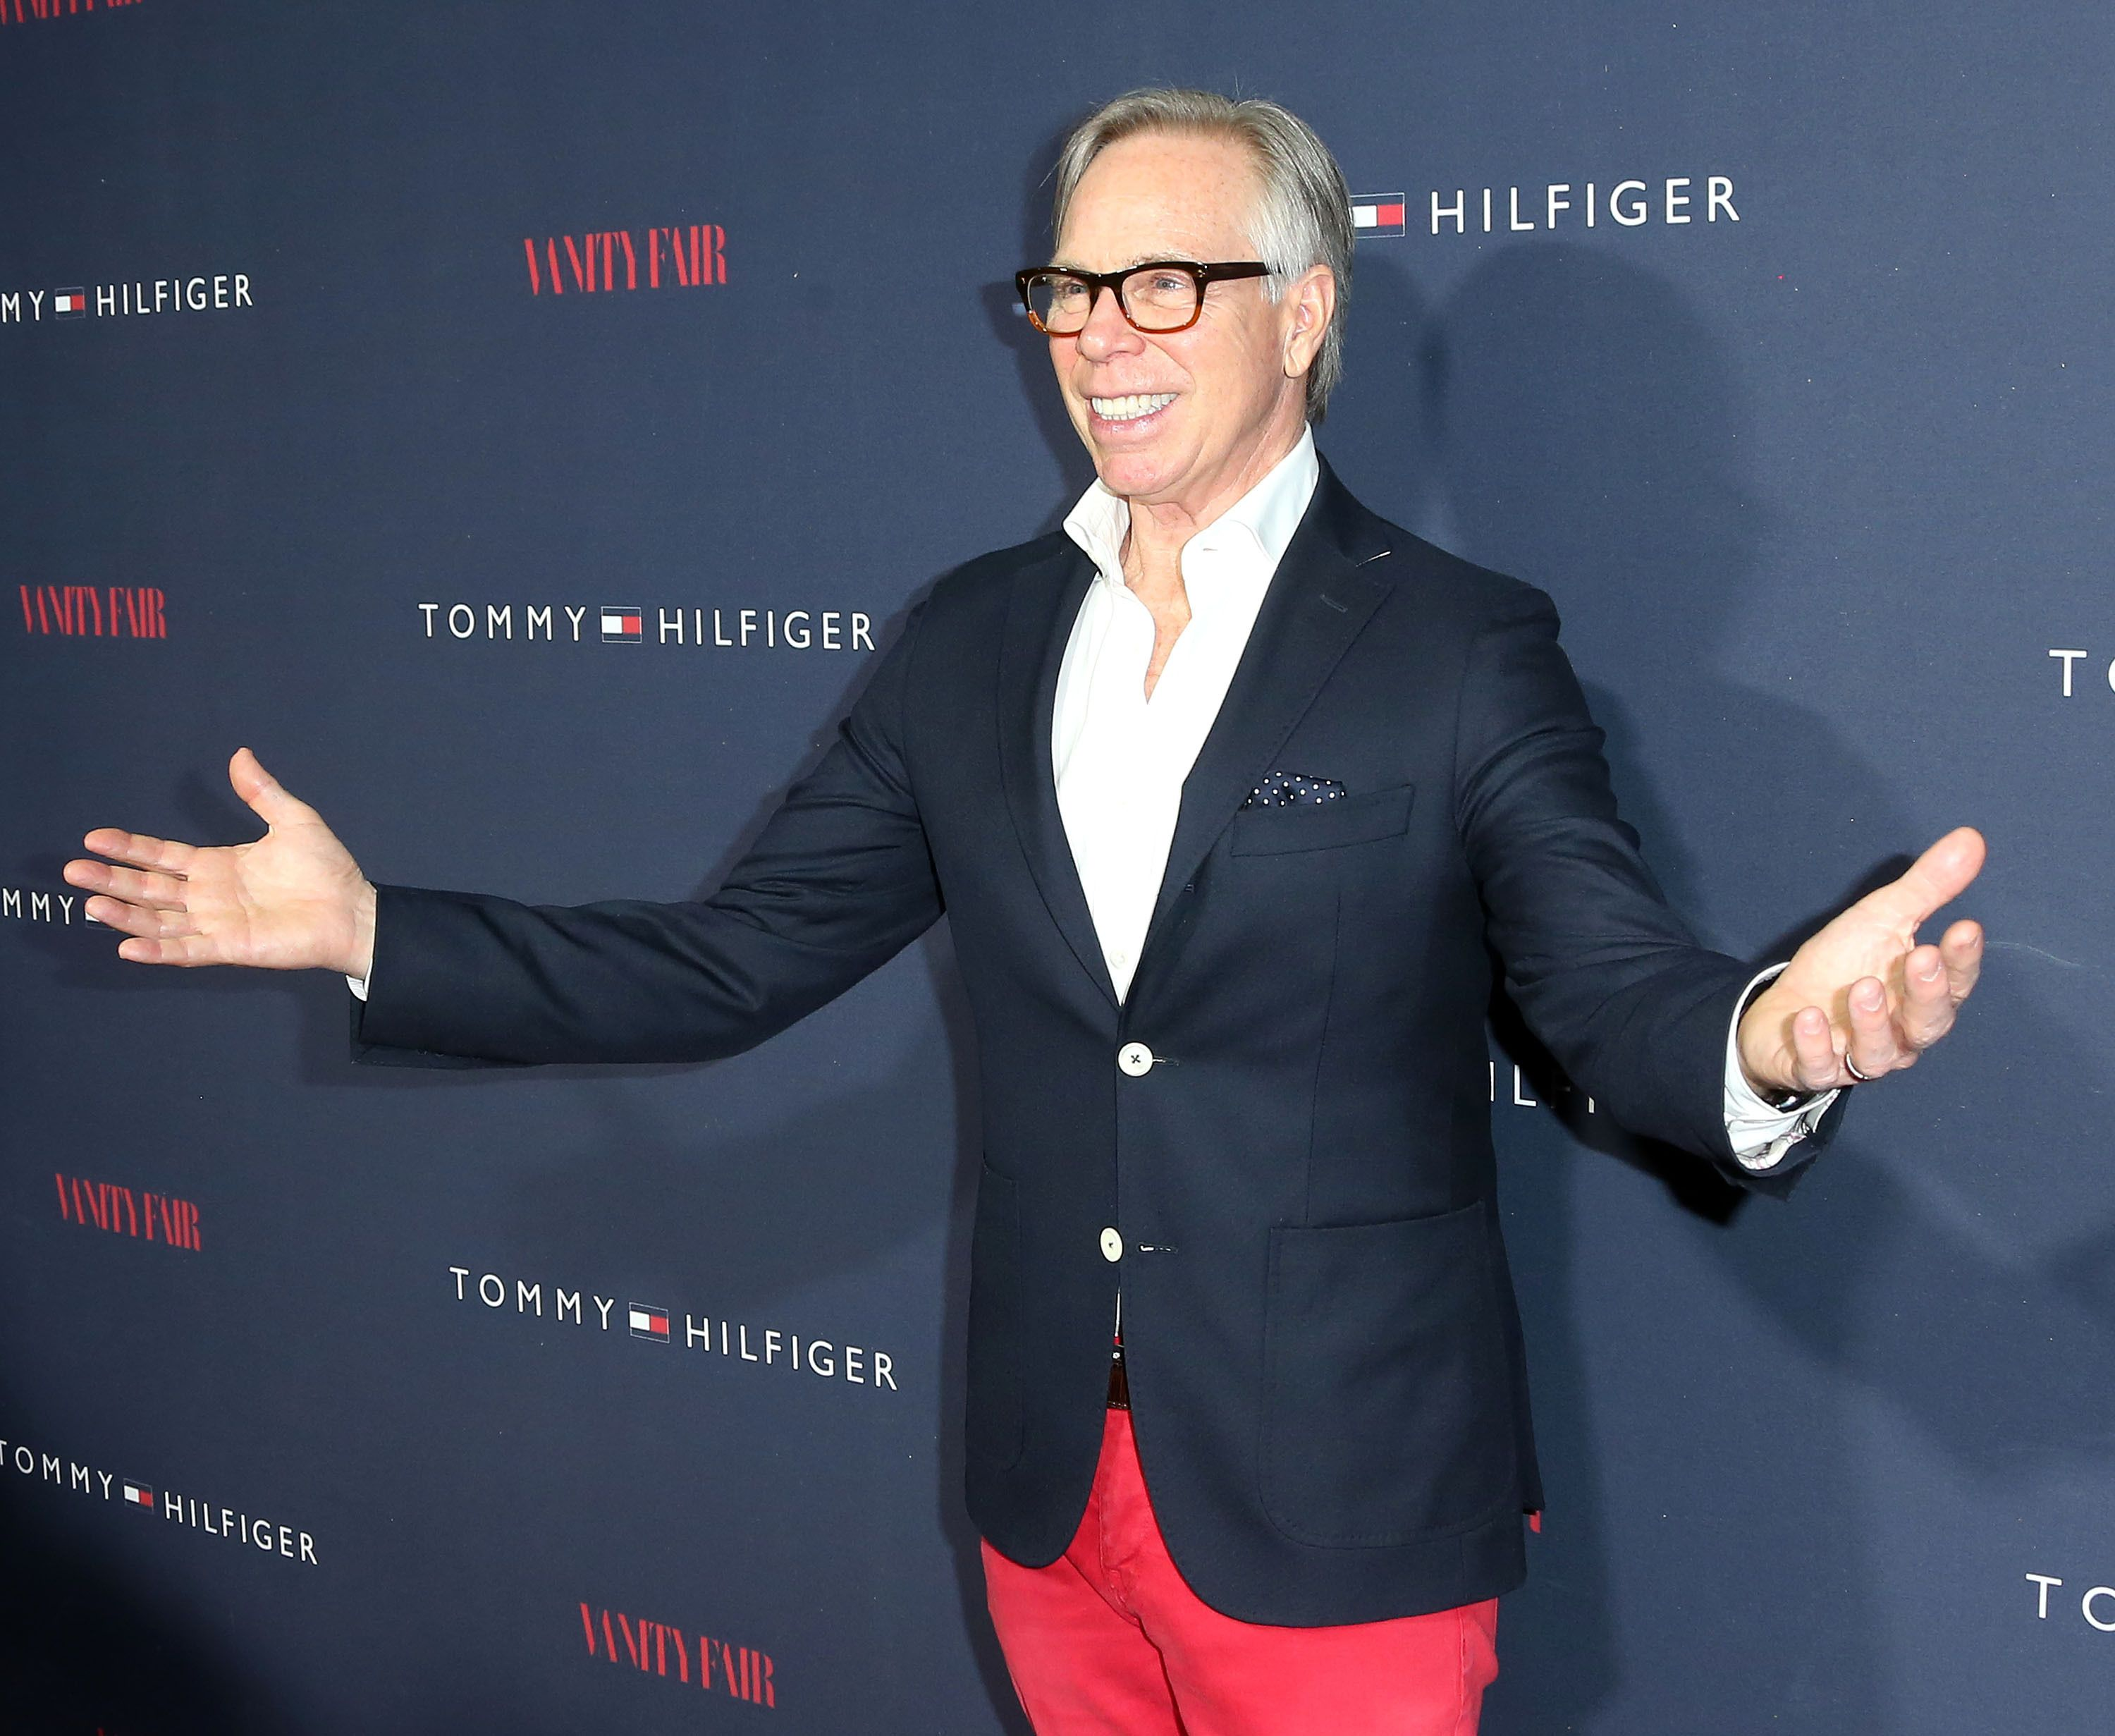 3000x2462 Tommy Hilfiger Wallpapers Images Photos Pictures Backgrounds